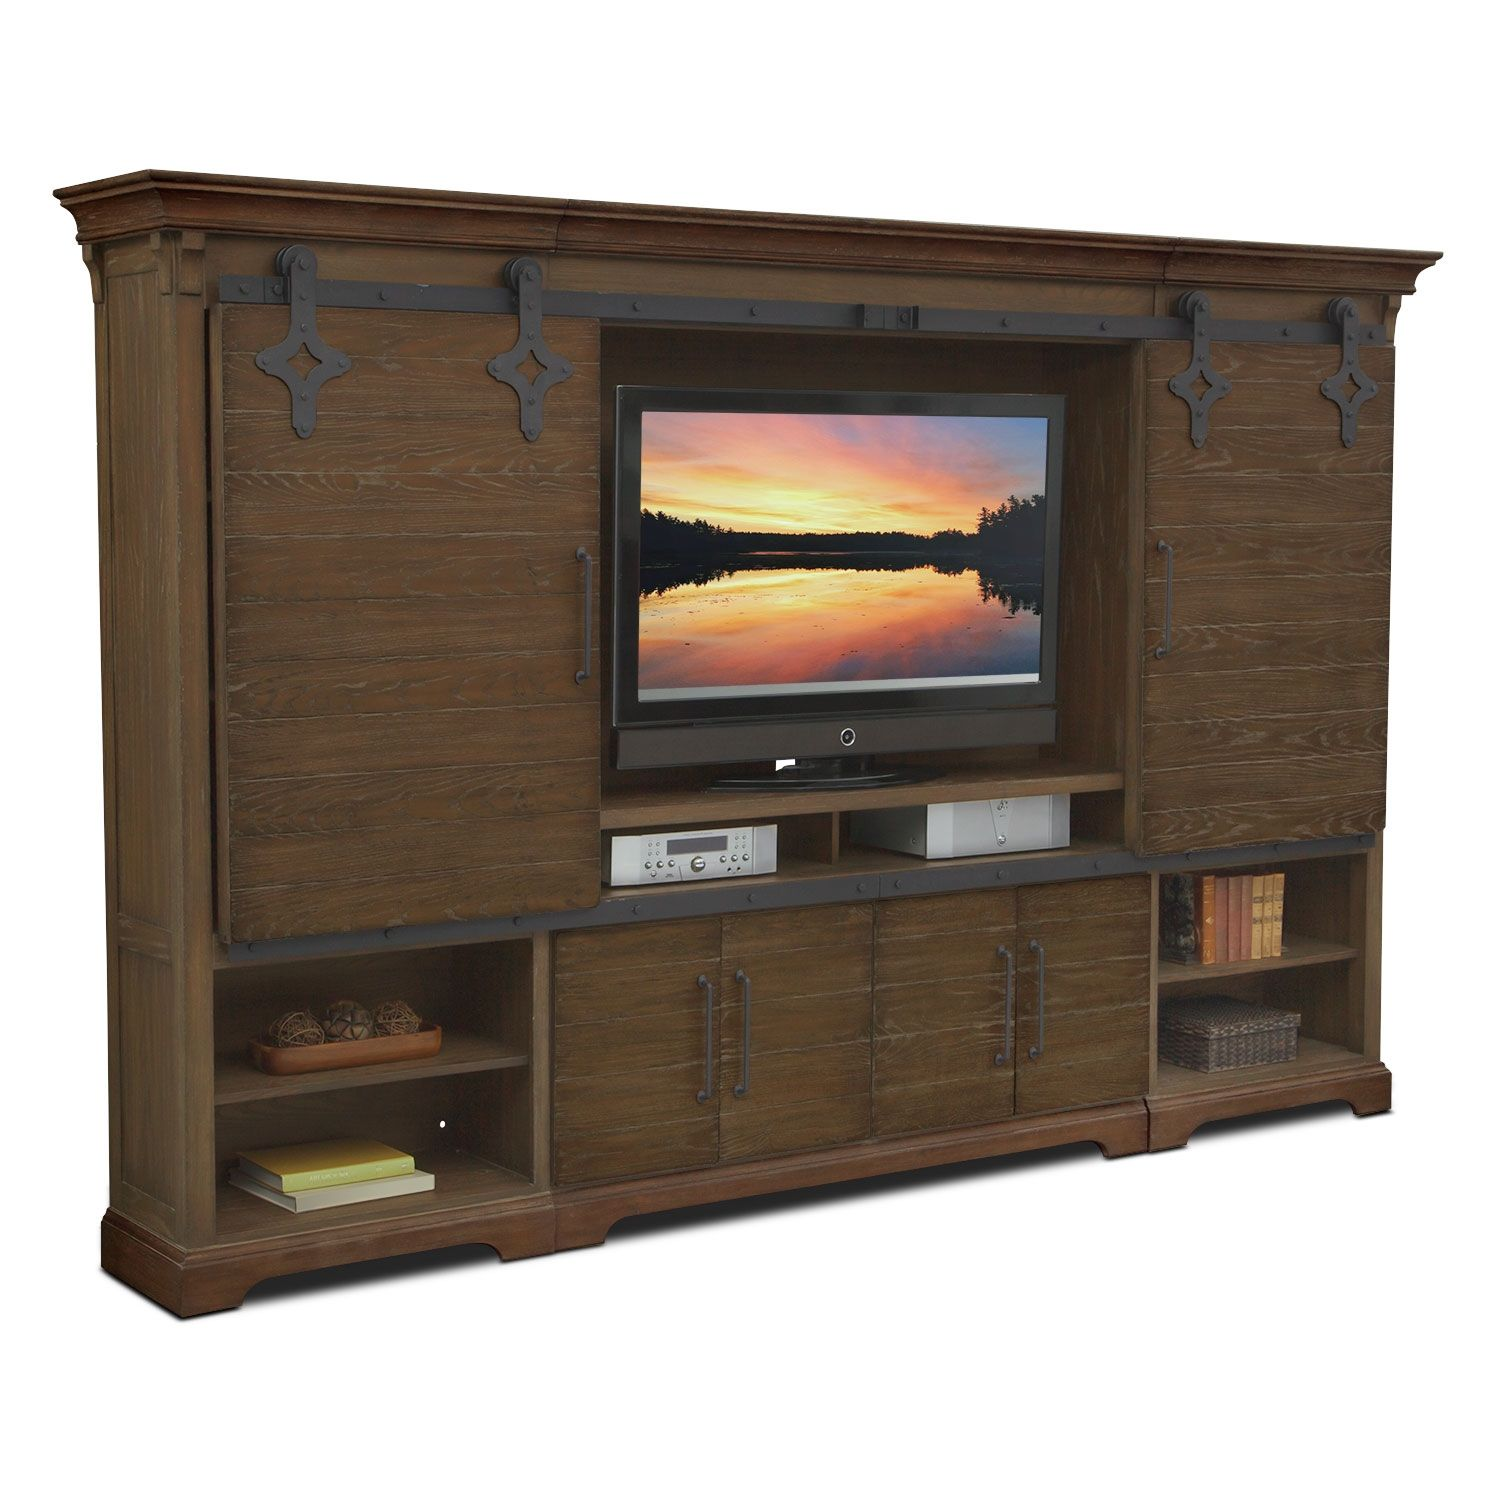 Casual Connection. The Union City entertainment wall unit in brown ...